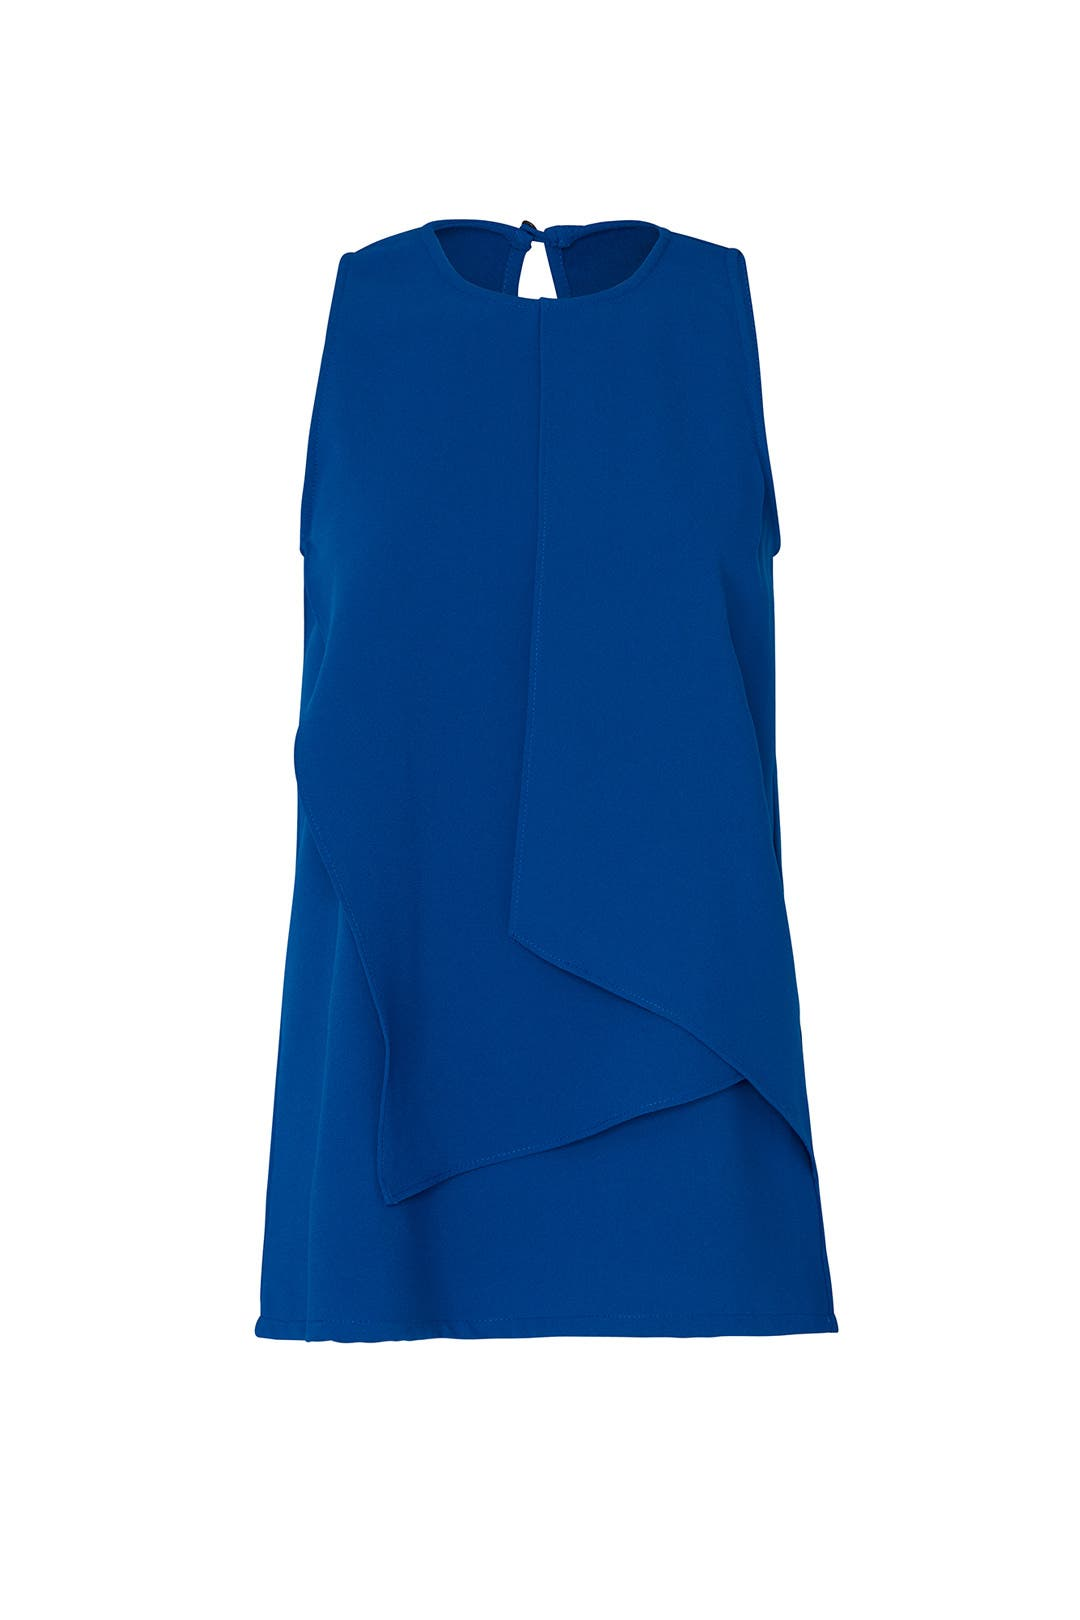 9de5ff5eb311a Fifteen Twenty. Read Reviews. Asymmetric Crepe Top